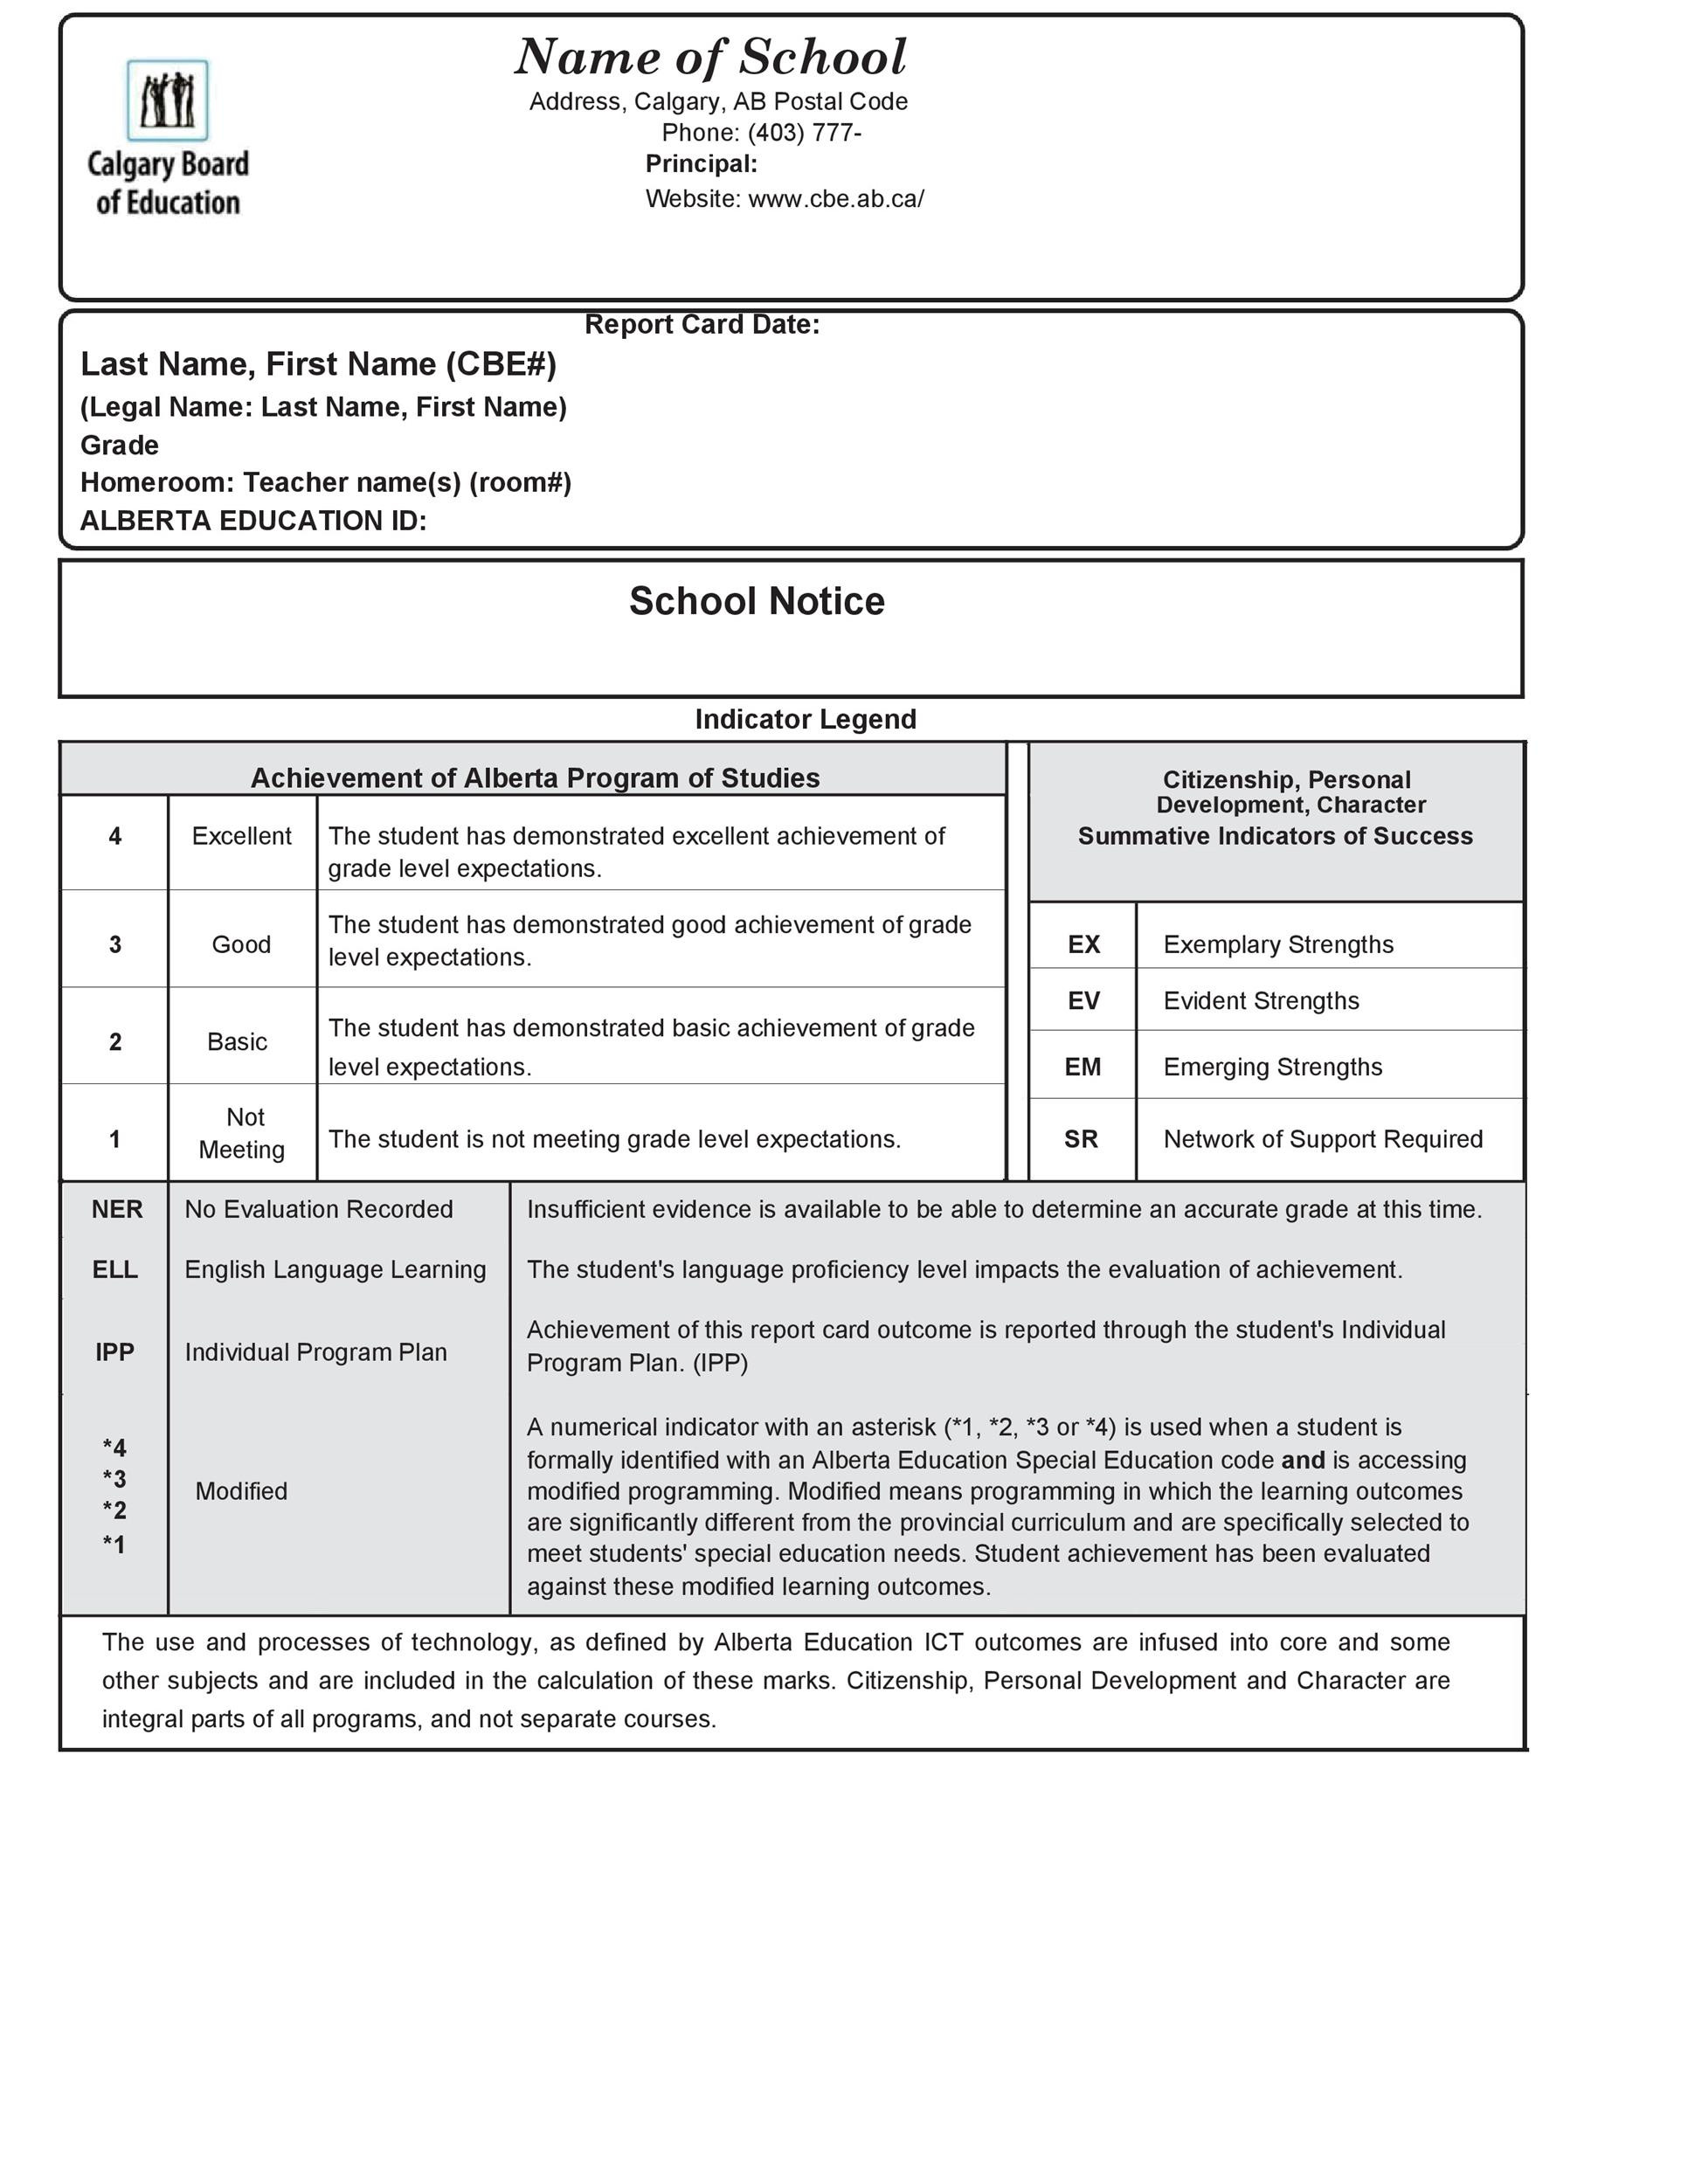 Report Card Template Free